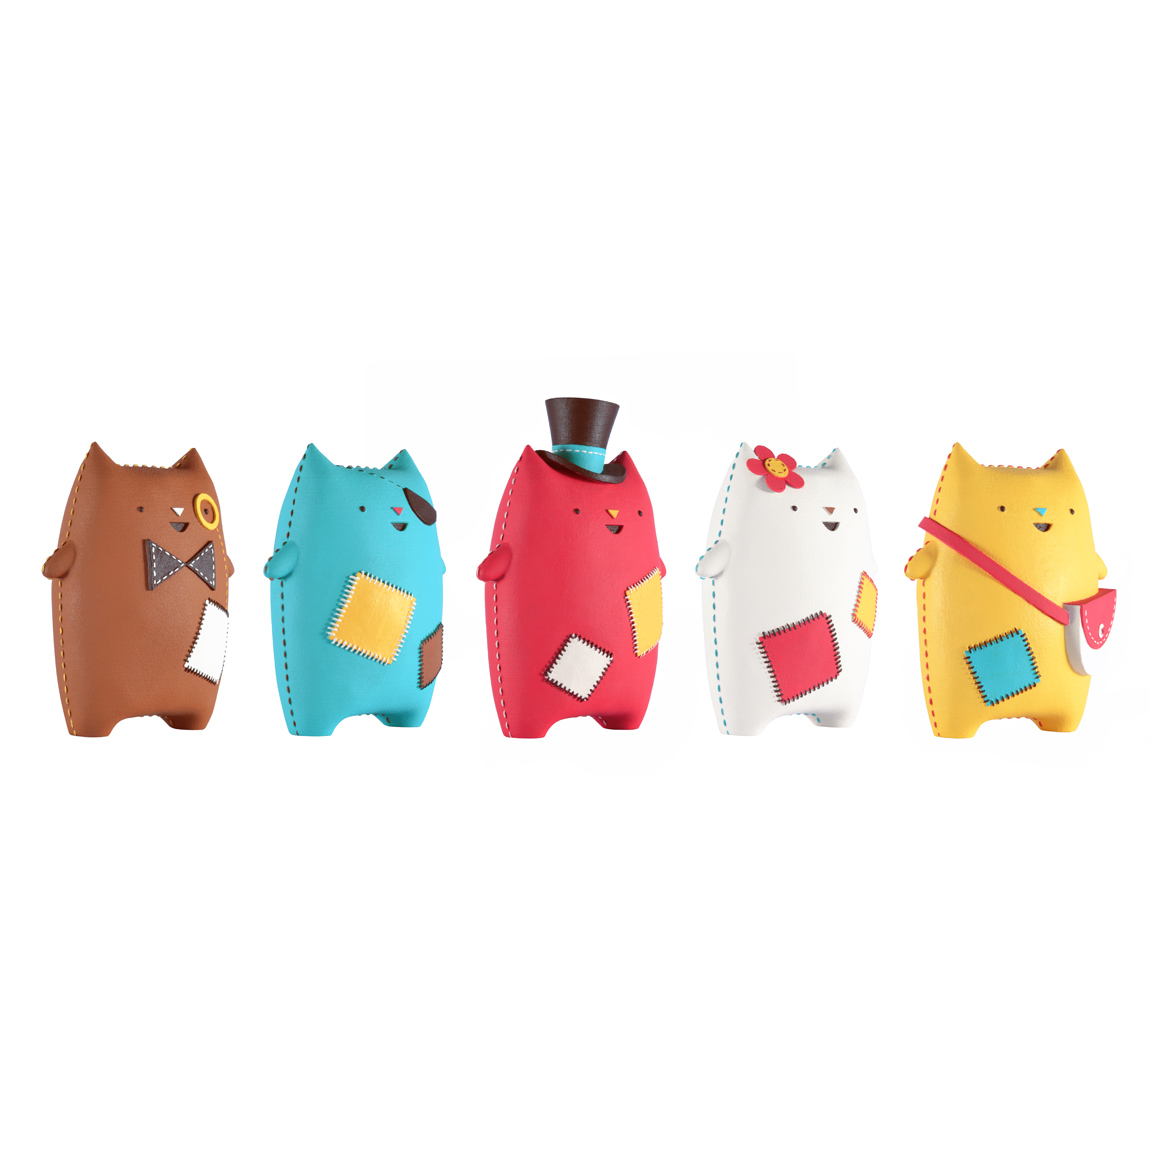 press_oddcats_figurines_group_lowres.jpg